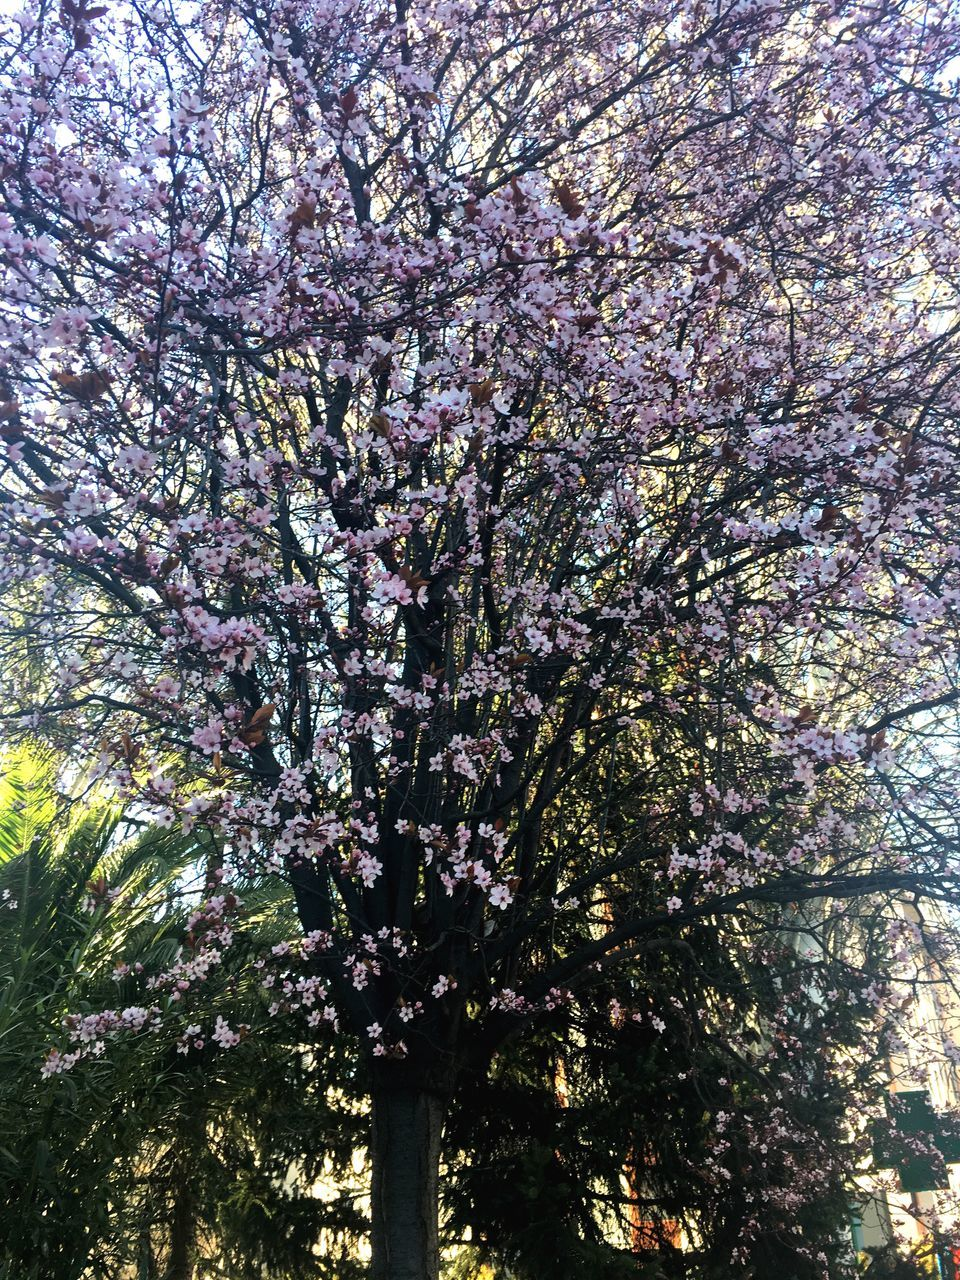 plant, tree, flower, growth, flowering plant, blossom, beauty in nature, springtime, branch, freshness, nature, low angle view, fragility, day, no people, cherry blossom, outdoors, cherry tree, vulnerability, pink color, spring, tree canopy